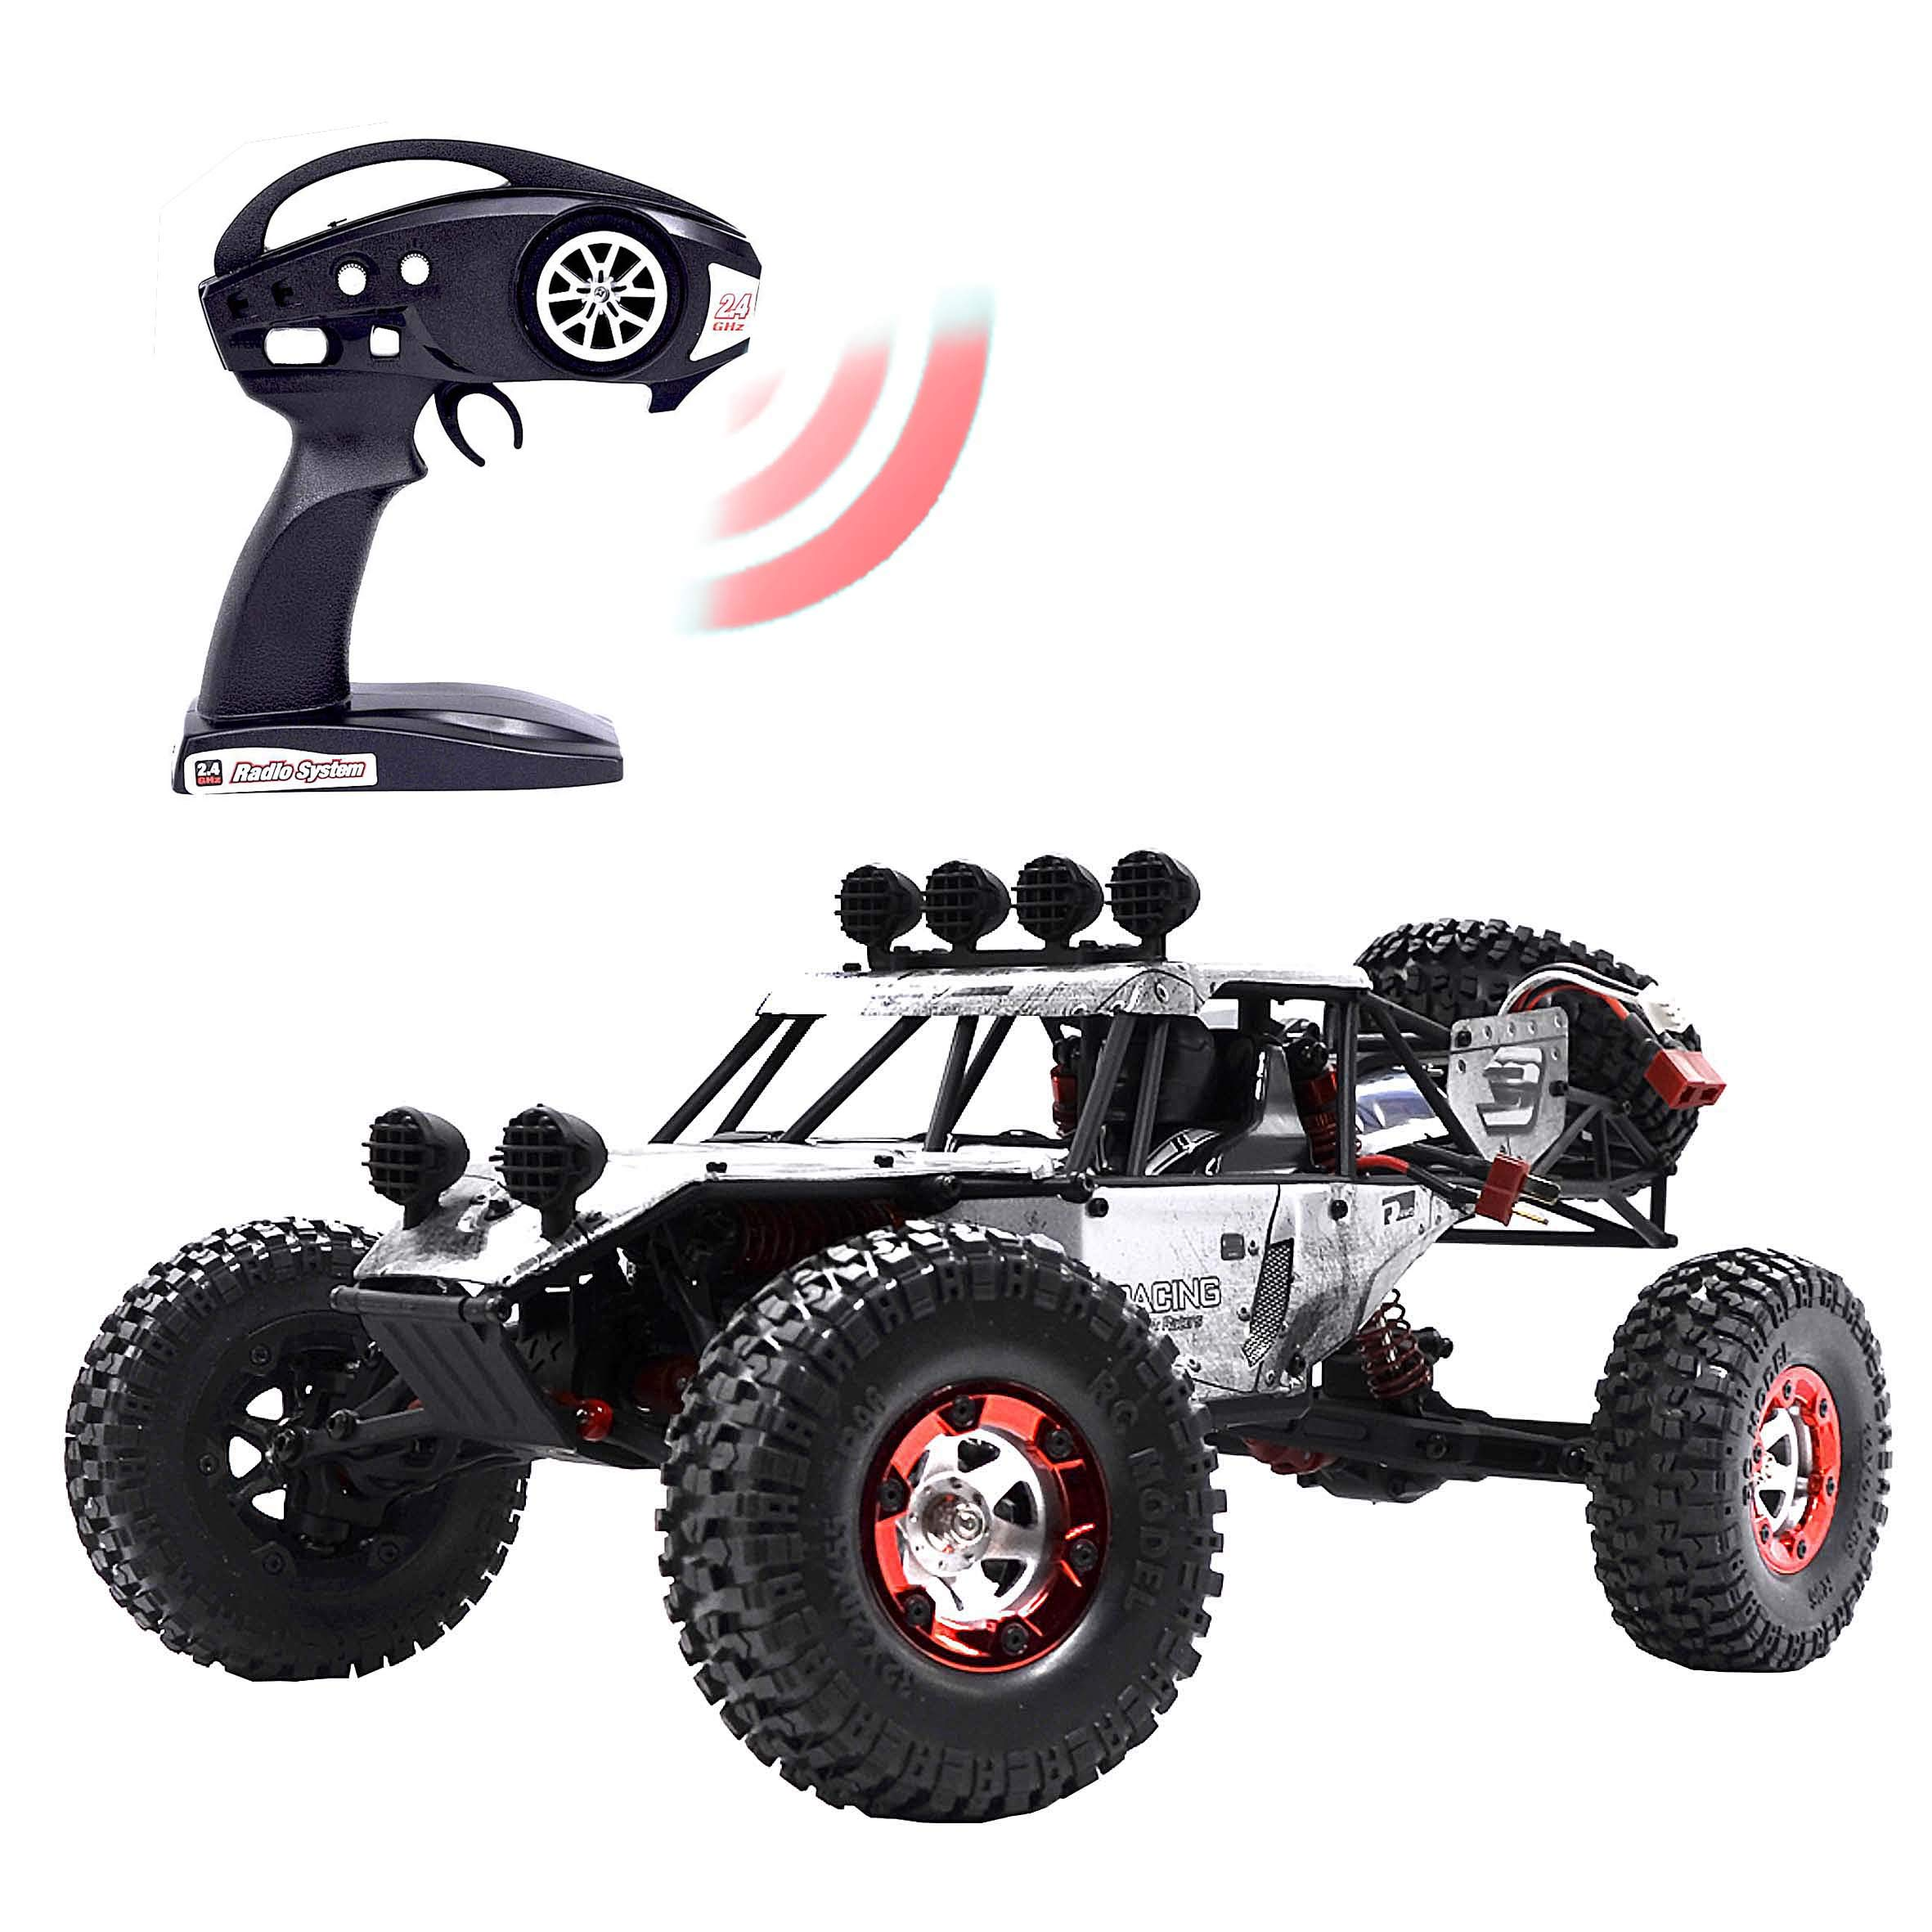 KELIWOW Electric RC Buggy 1/12 Remote Control Car 2.4Ghz 4WD Desert Off-Road Truck 40KM/h High Speed All Terrain RC Rock Crawler Monster Car for Kids and Adults-Gray